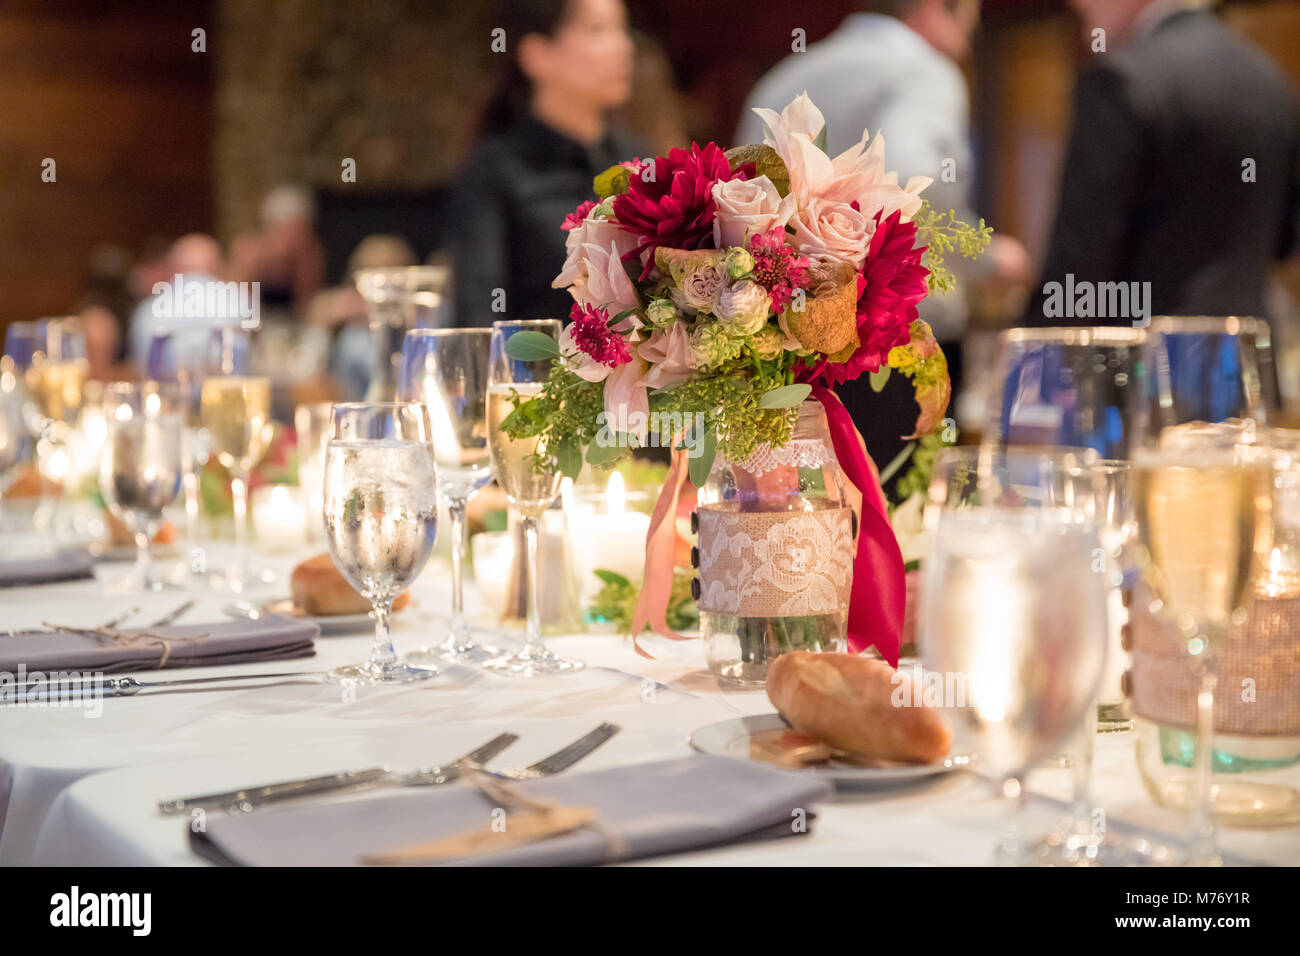 Autumn Wedding Centerpieces Stock Photos Autumn Wedding